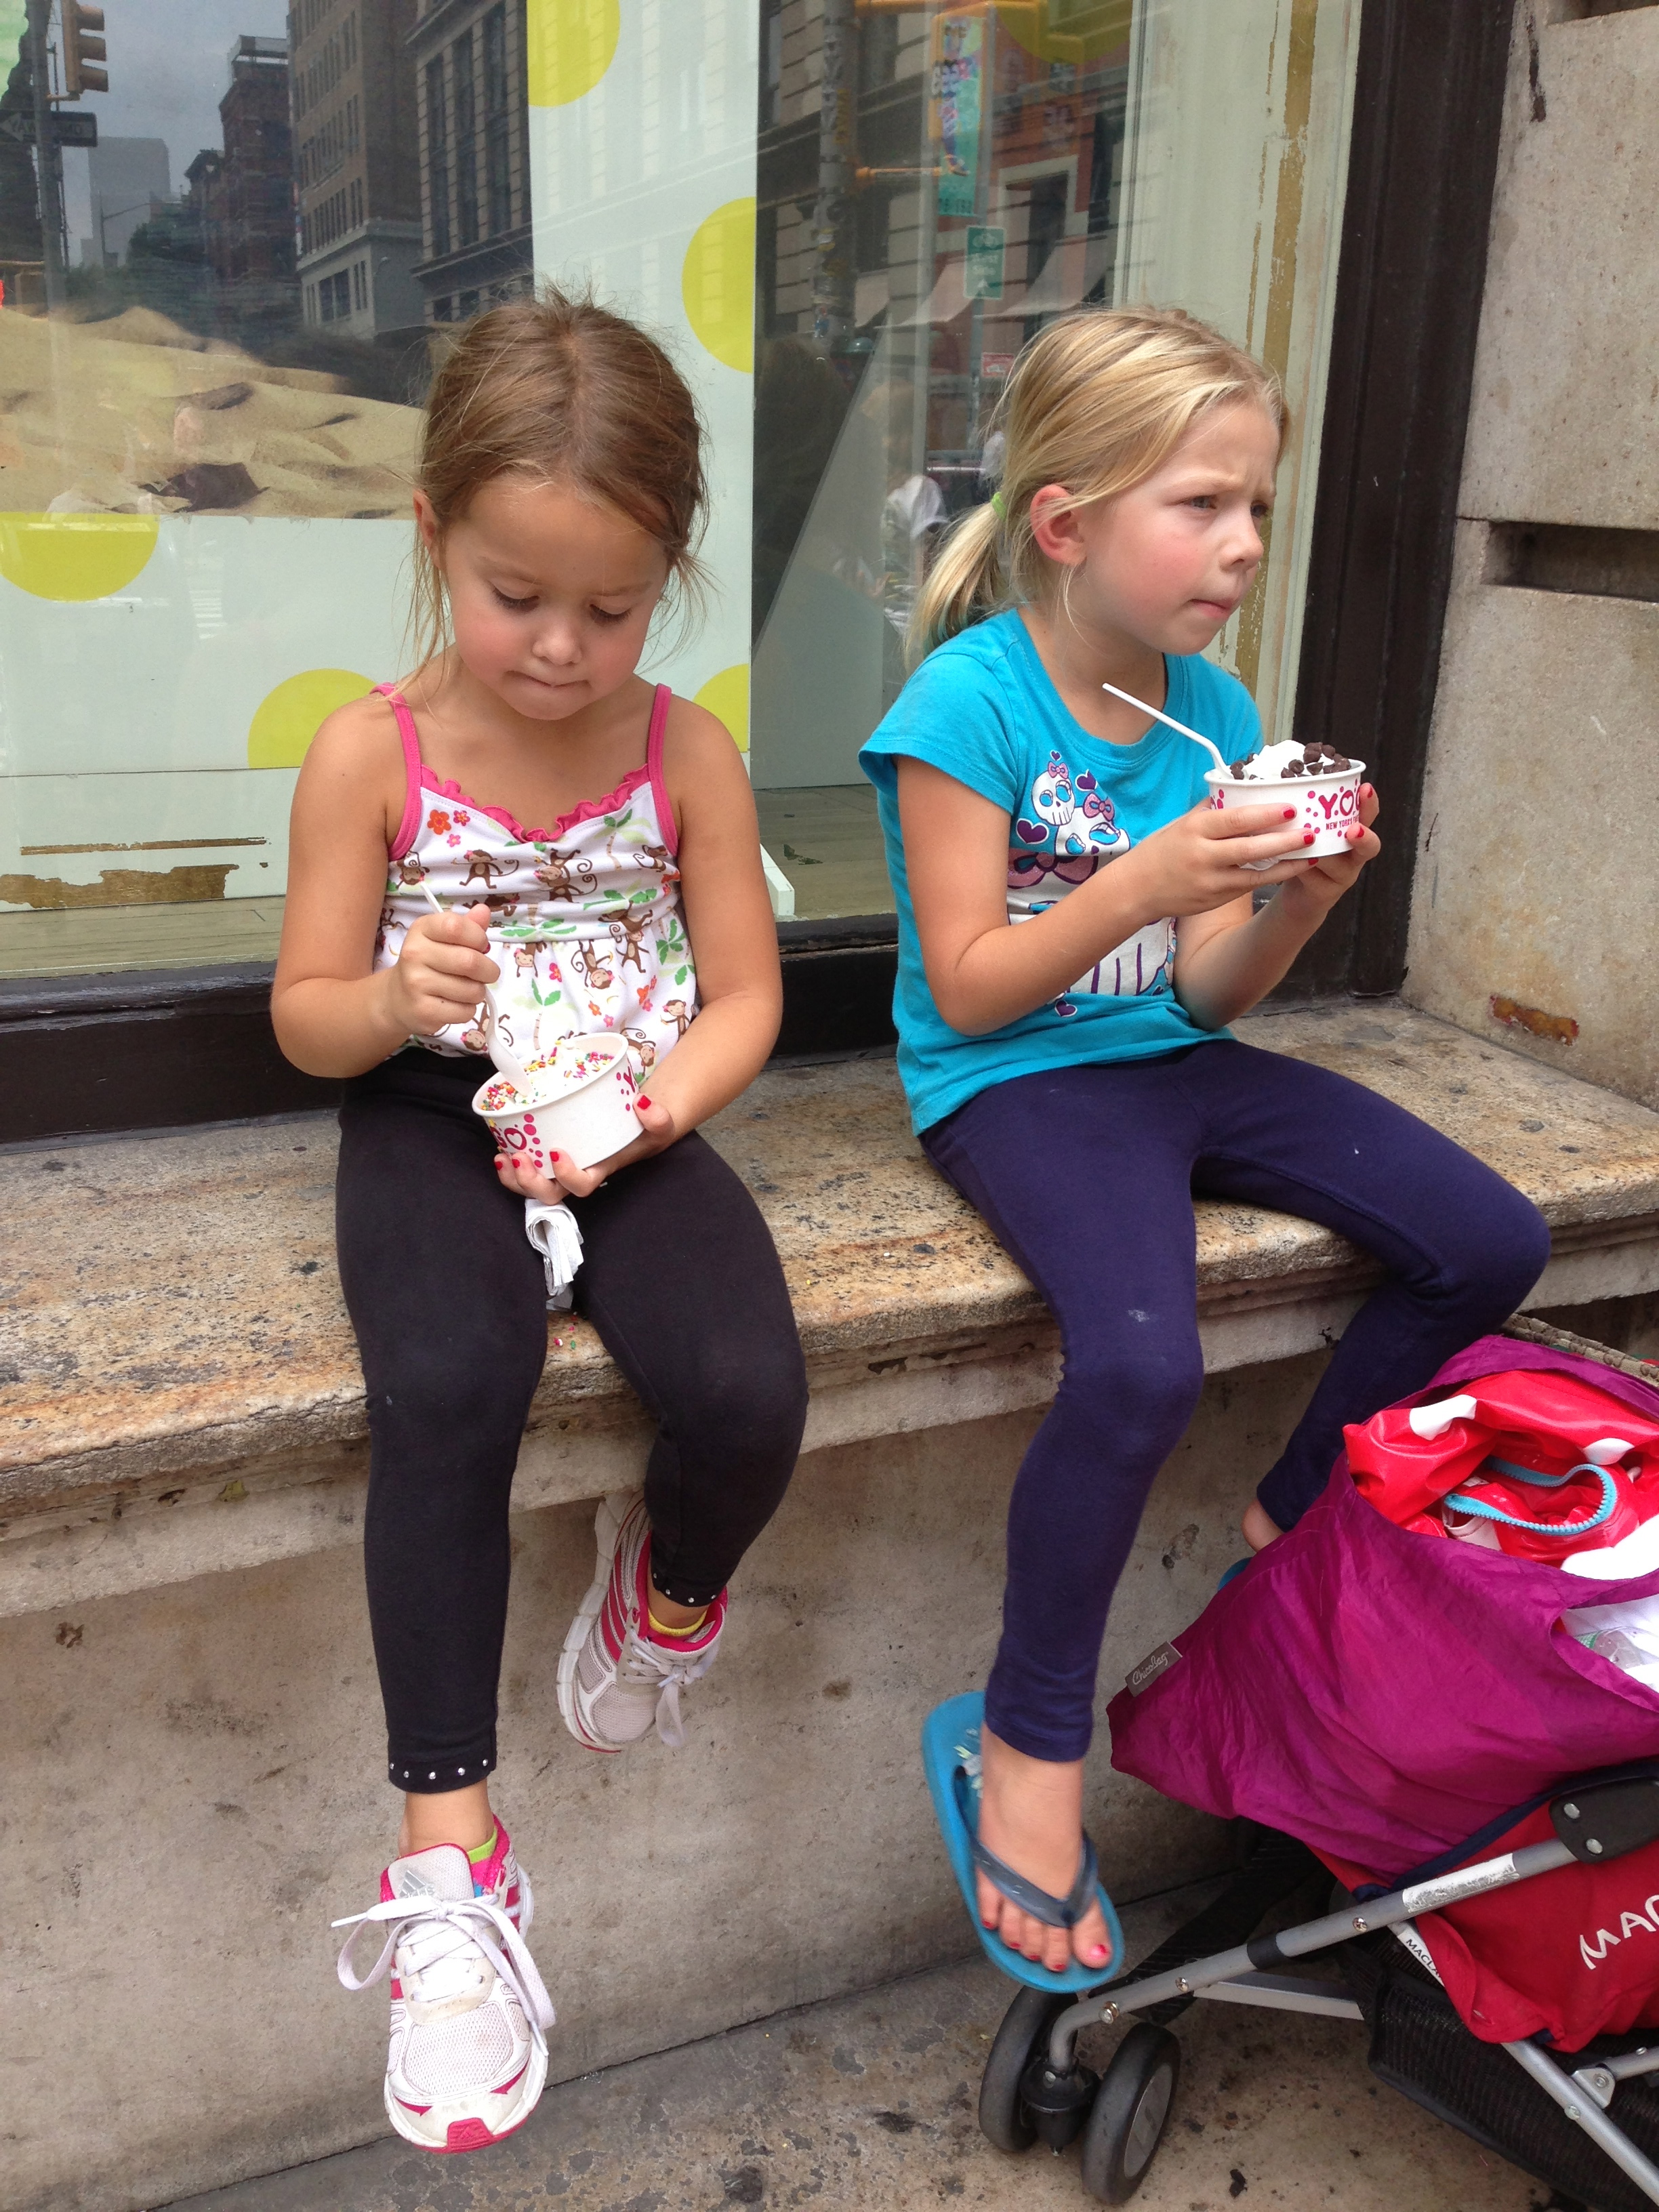 Soho, traveling with kids, New York City, ice cream break, summer in New York City